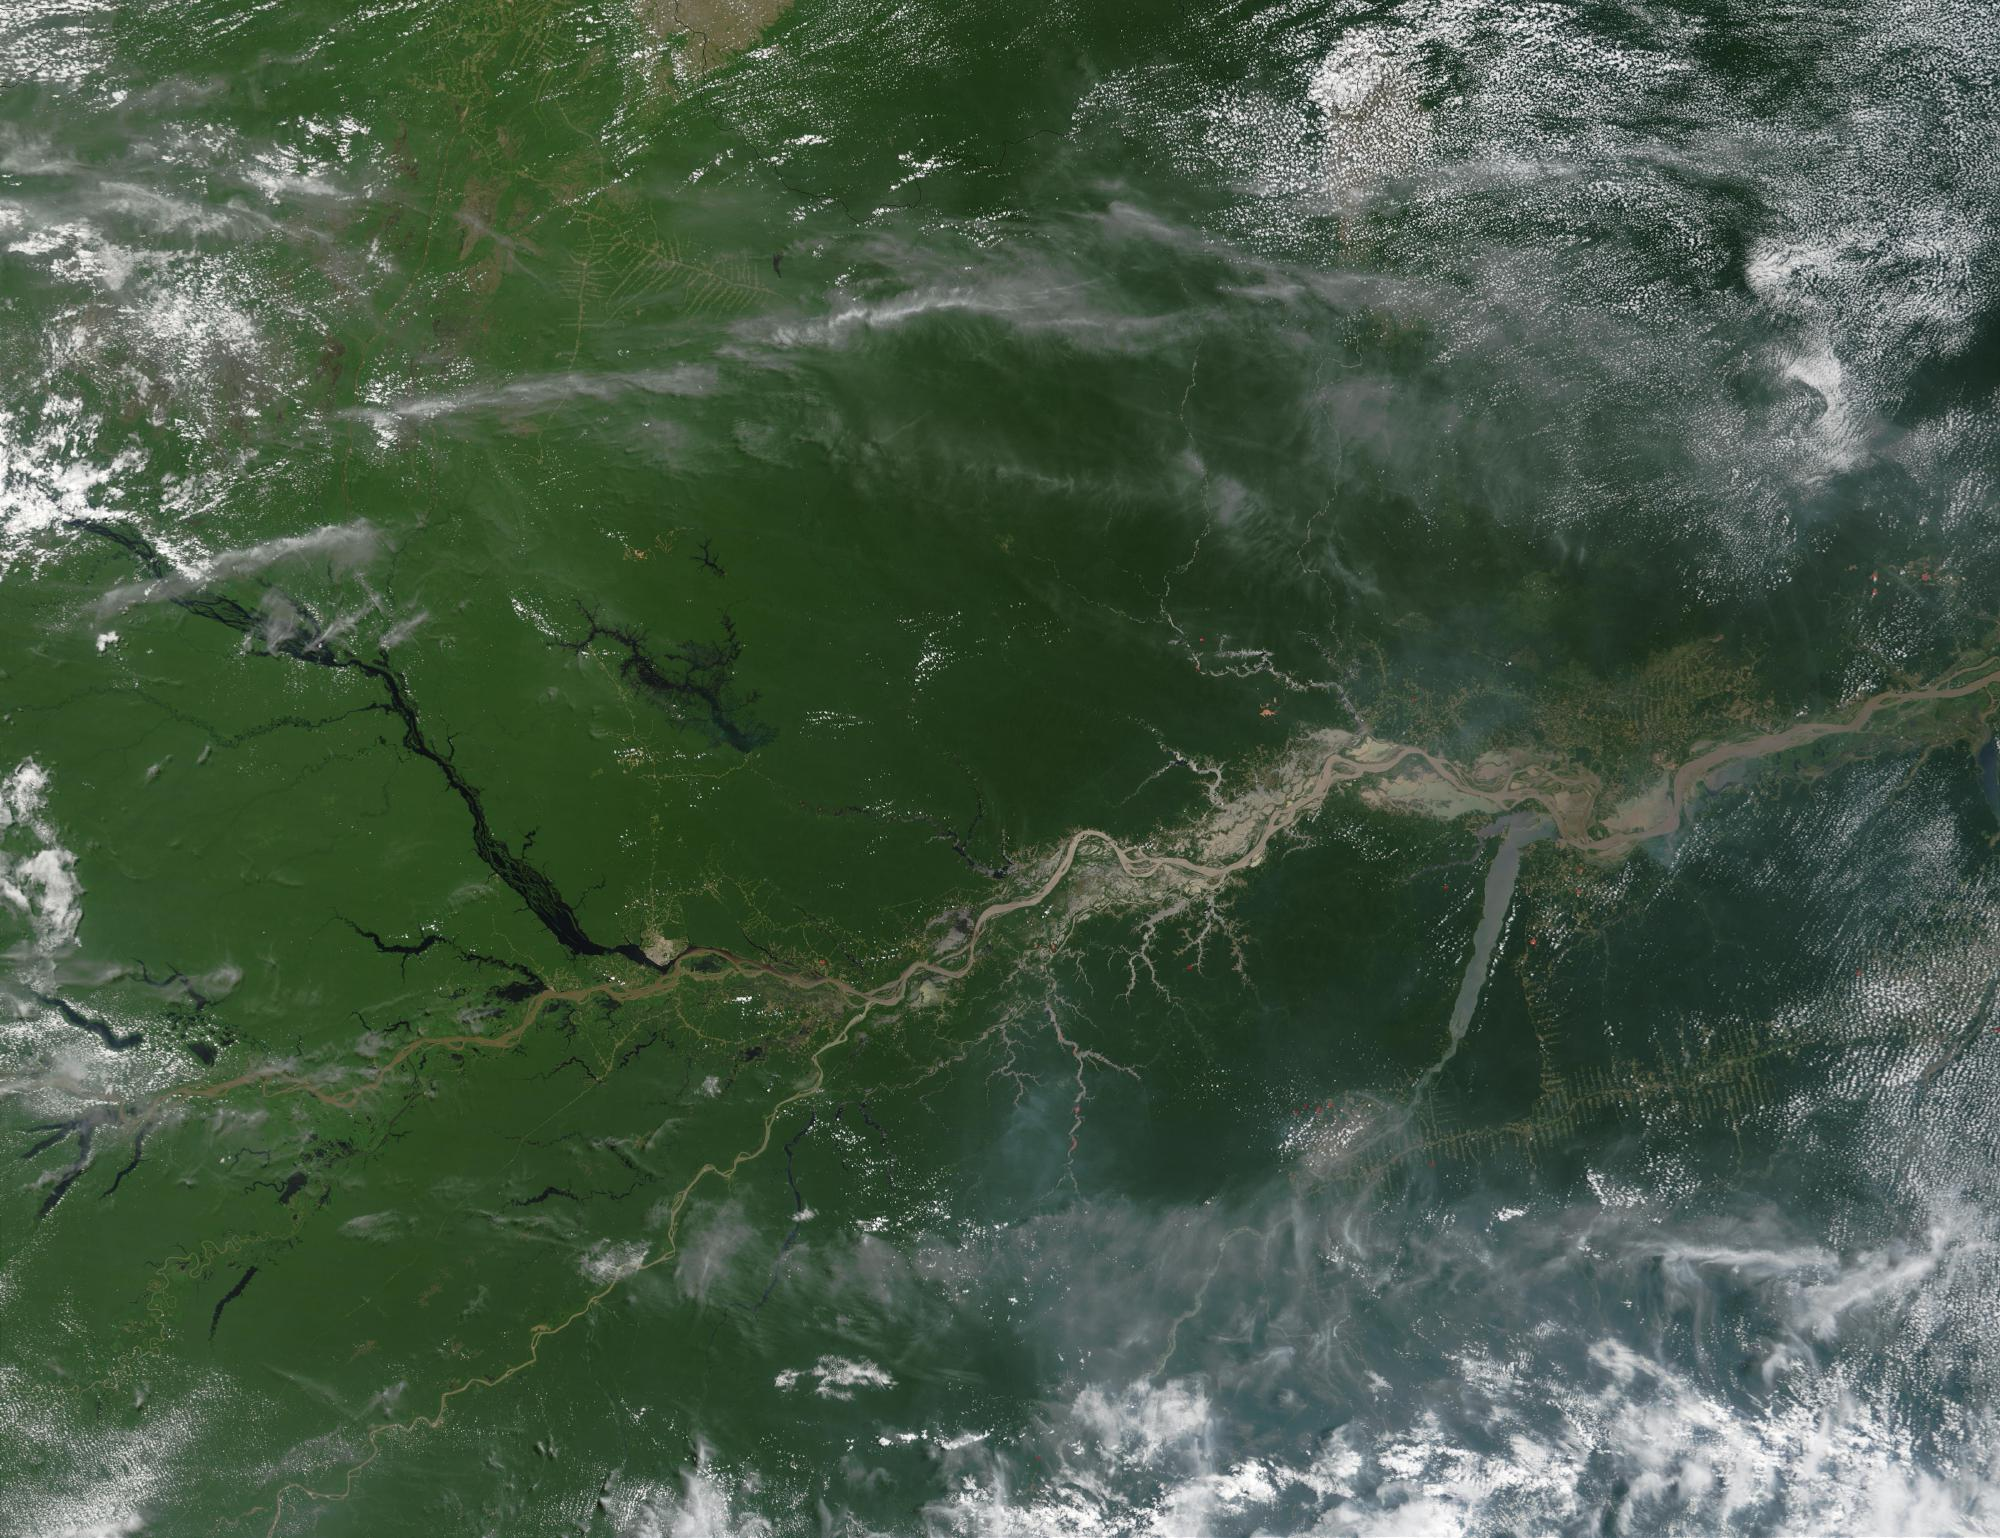 Satellite Image, Photo of the Amazon River, Brazil